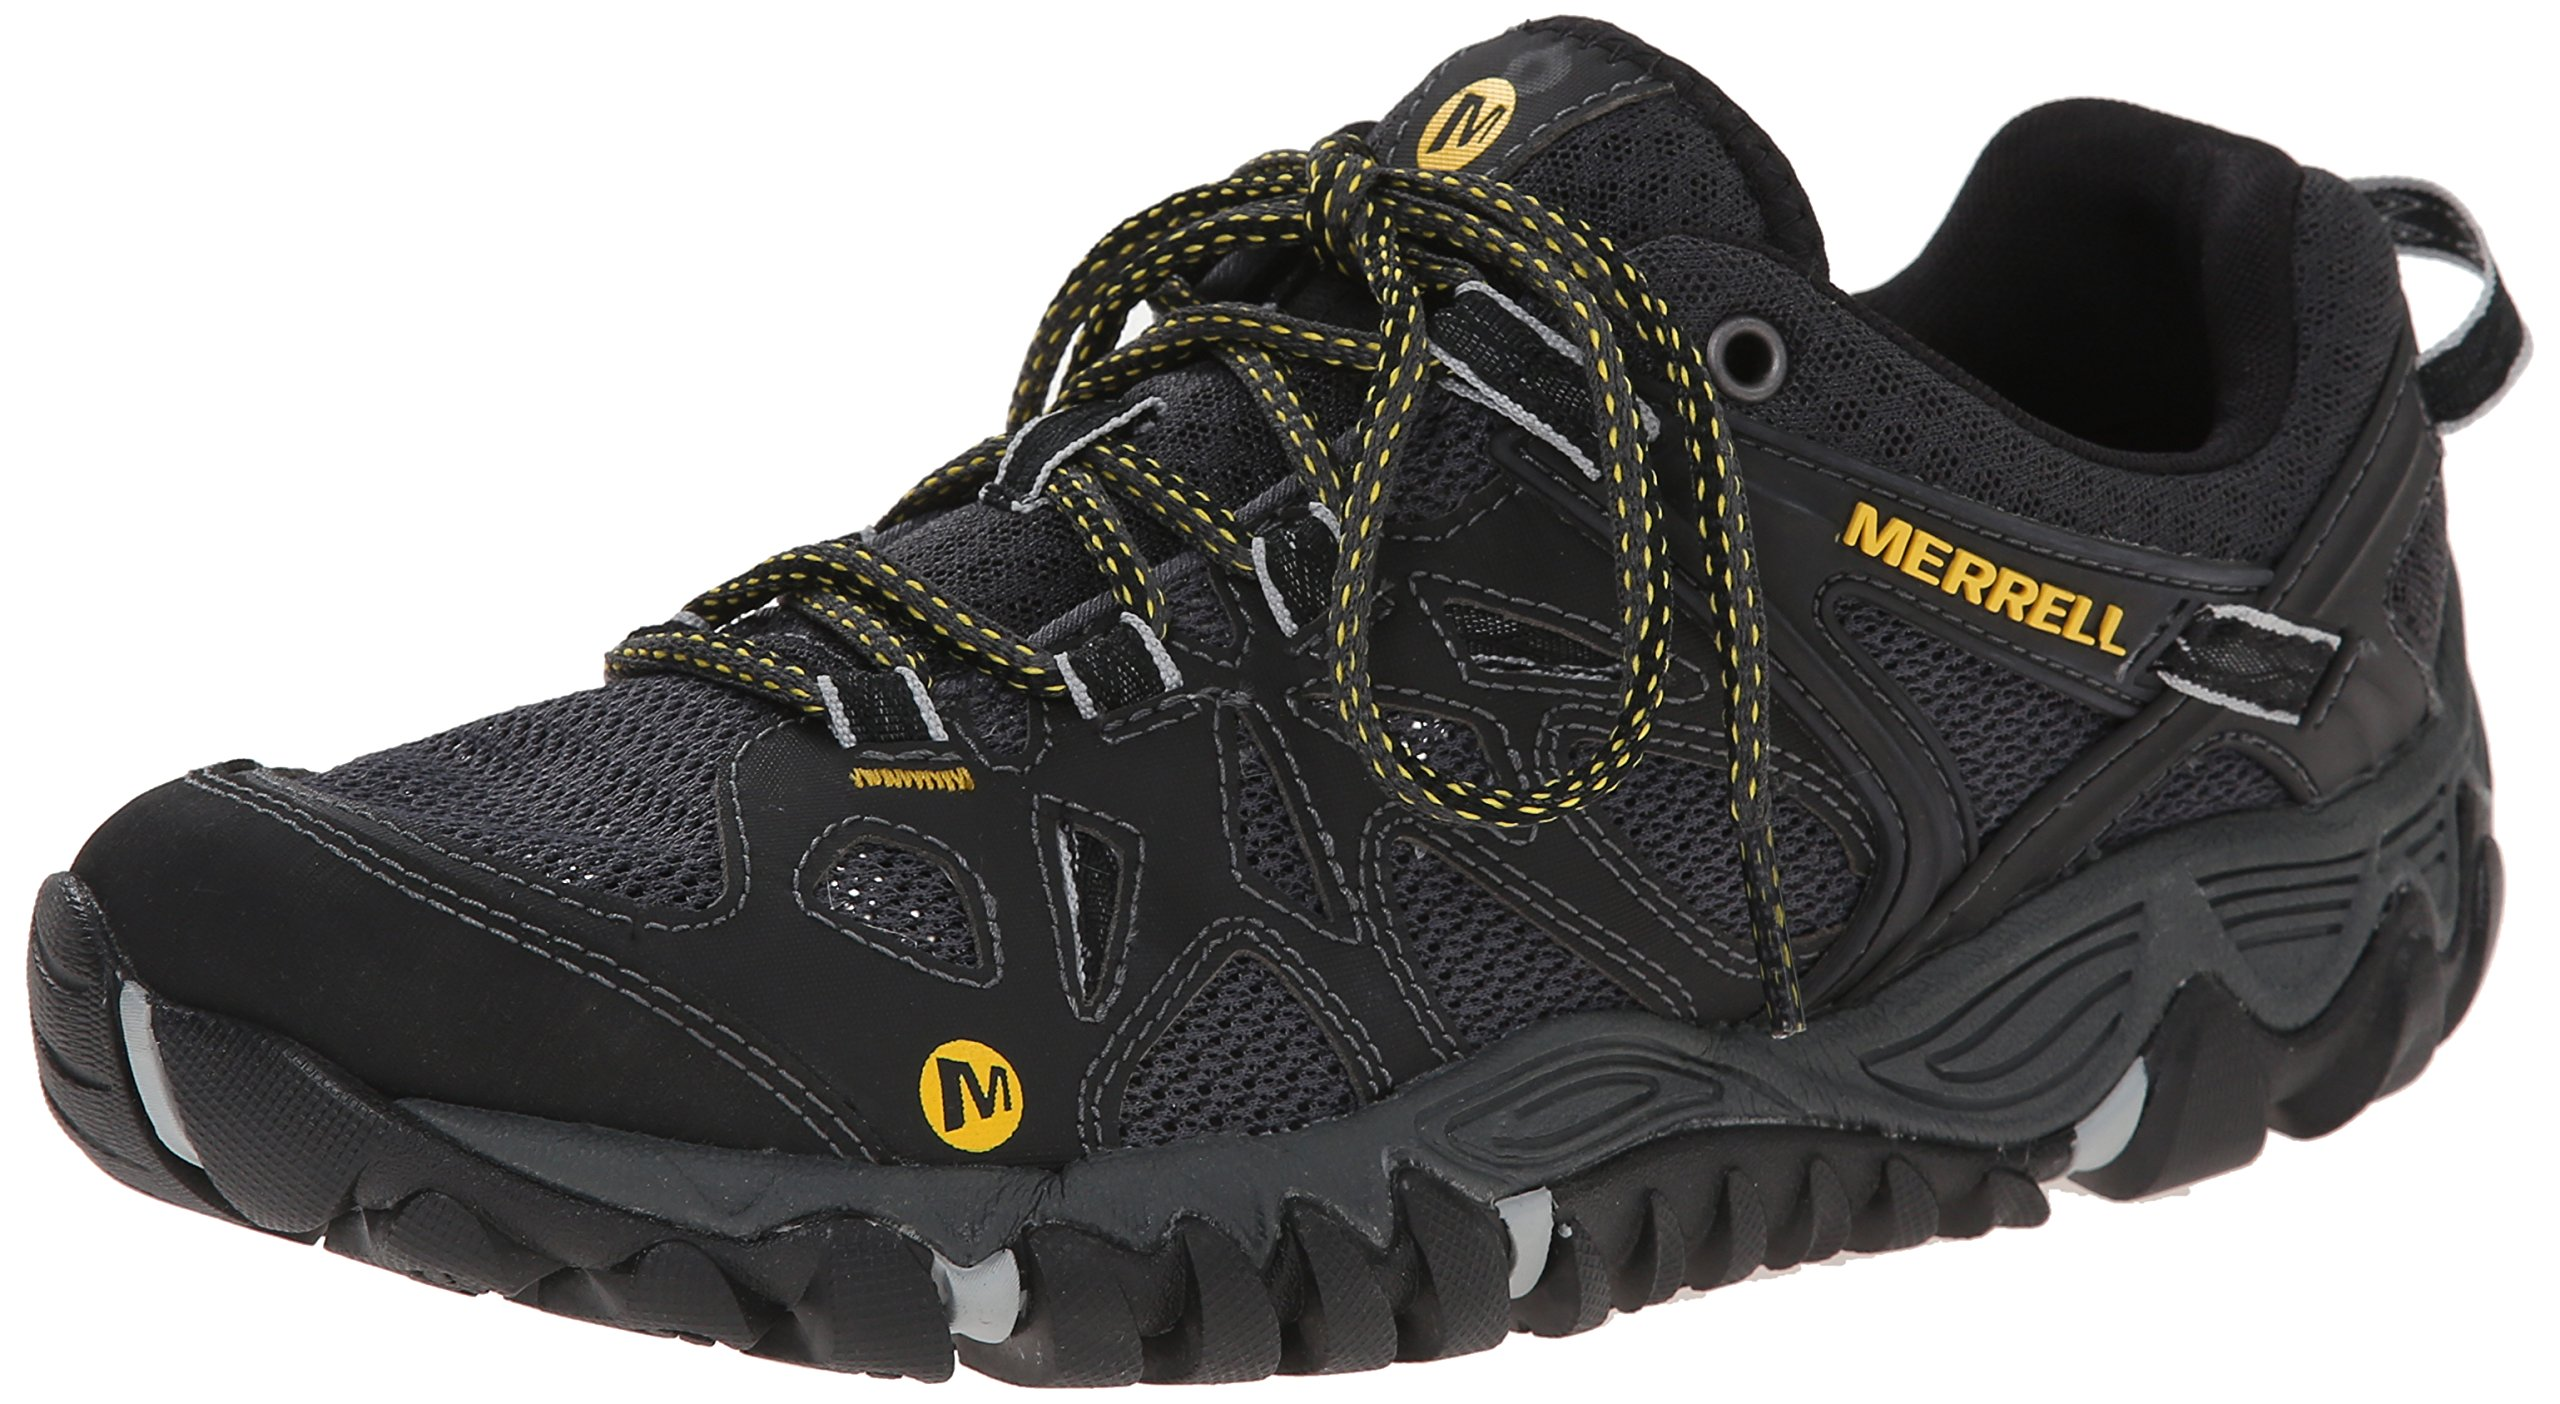 Merrell Men's All Out Blaze Aero Sport Hiking Water Shoe, Black, 8.5 M US by Merrell (Image #1)